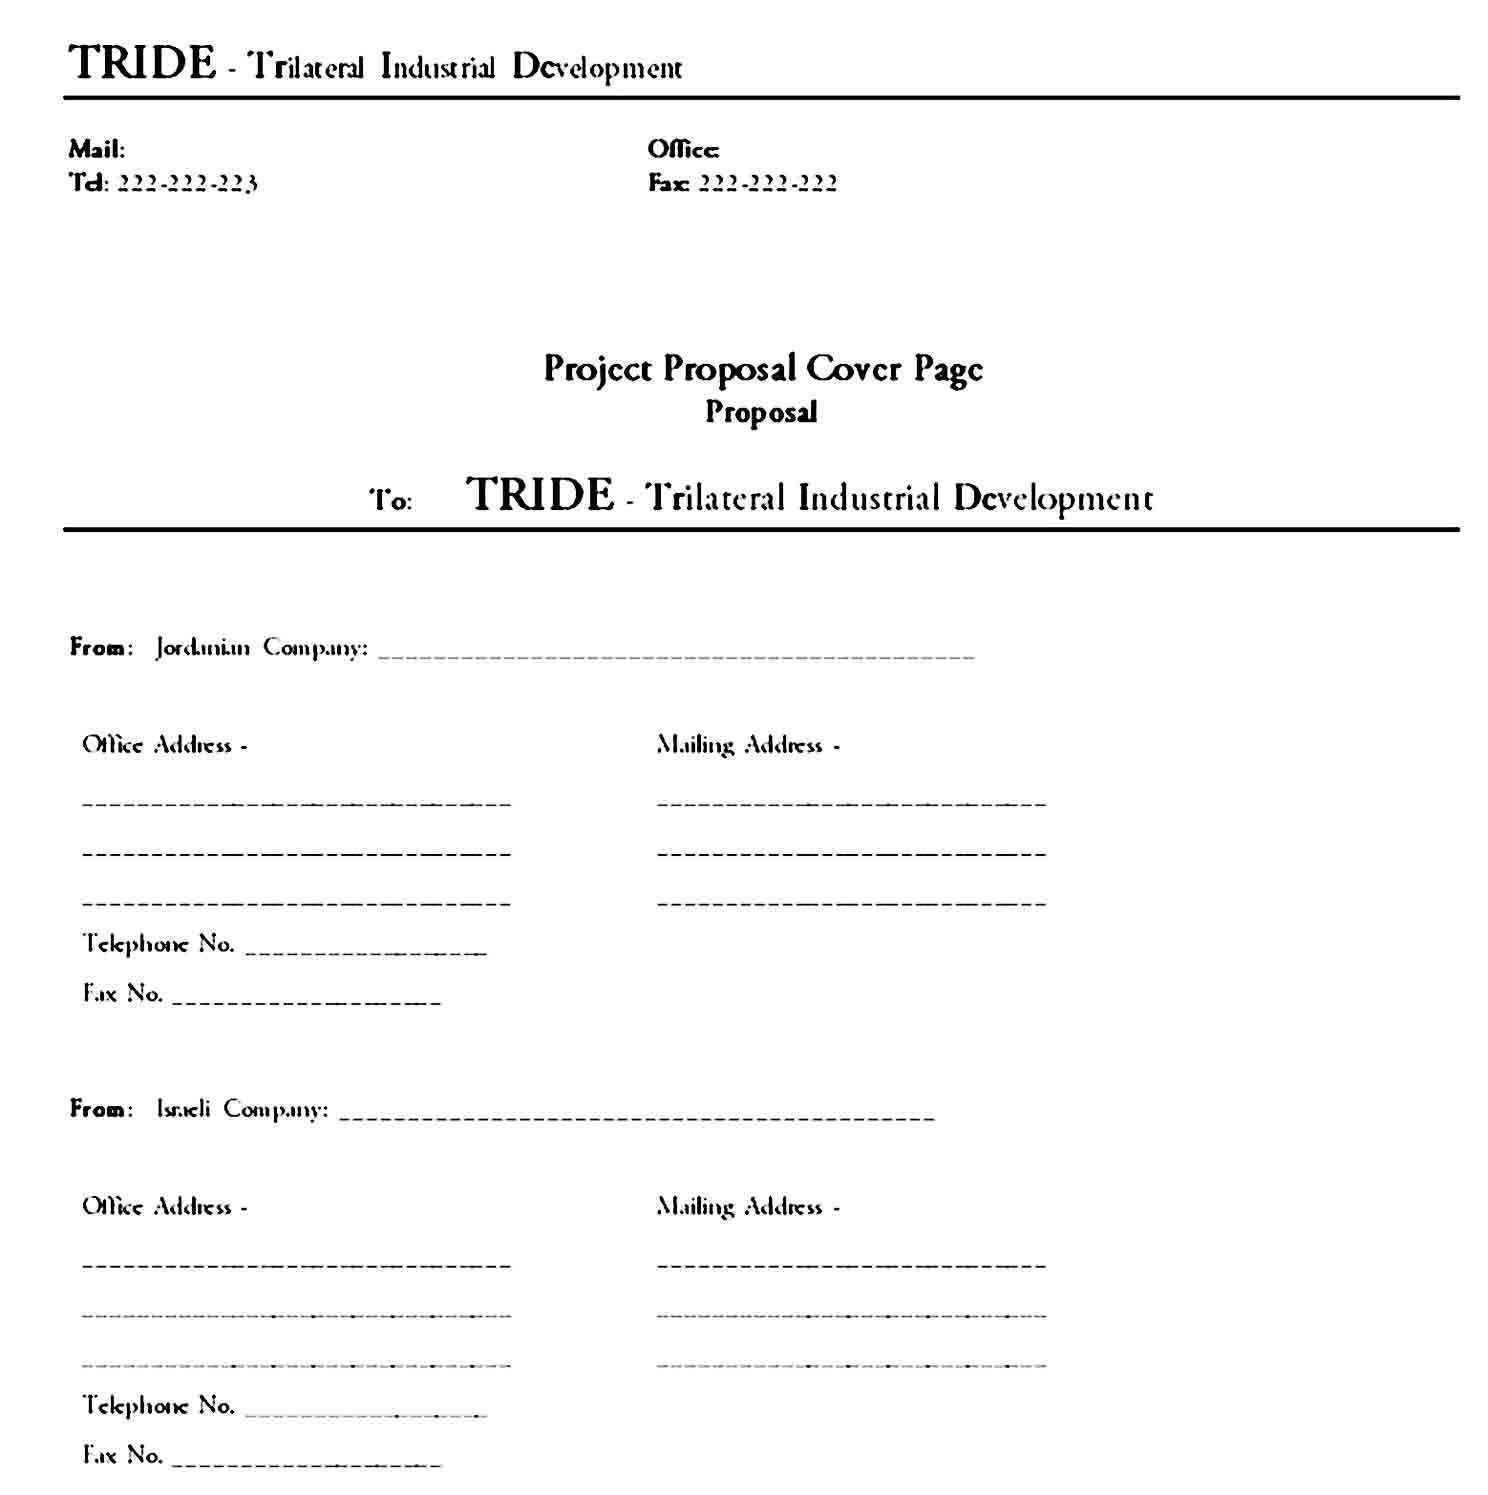 cover page template 31